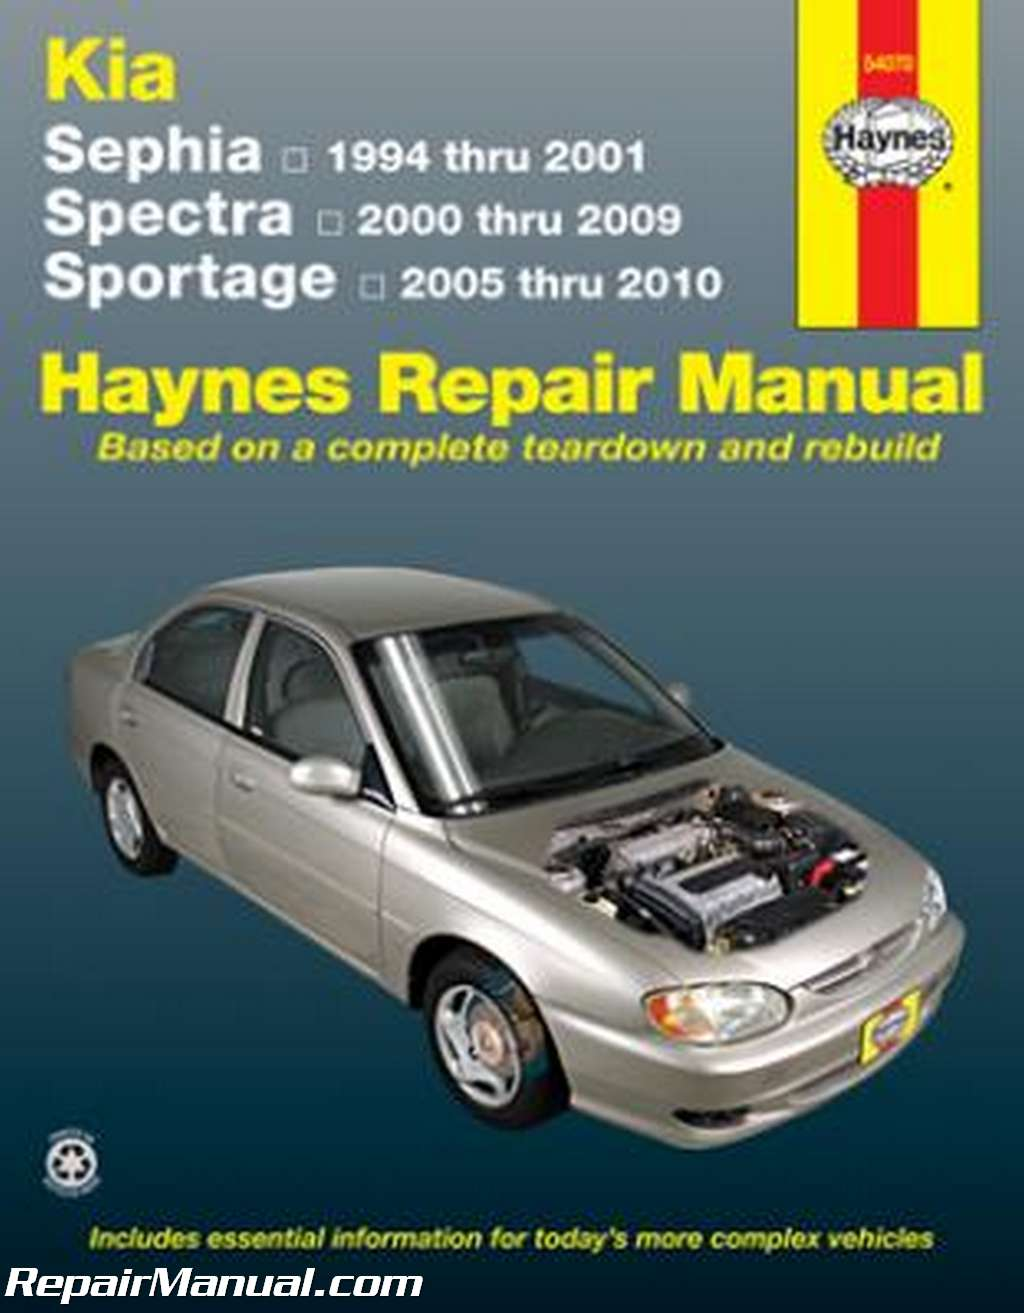 haynes 1994 2001 kia sephia 2000 2009 spectra 2005 2010 sportage rh repairmanual com 2005 mazda tribute repair manual pdf 2005 mazda 3 repair manual free download